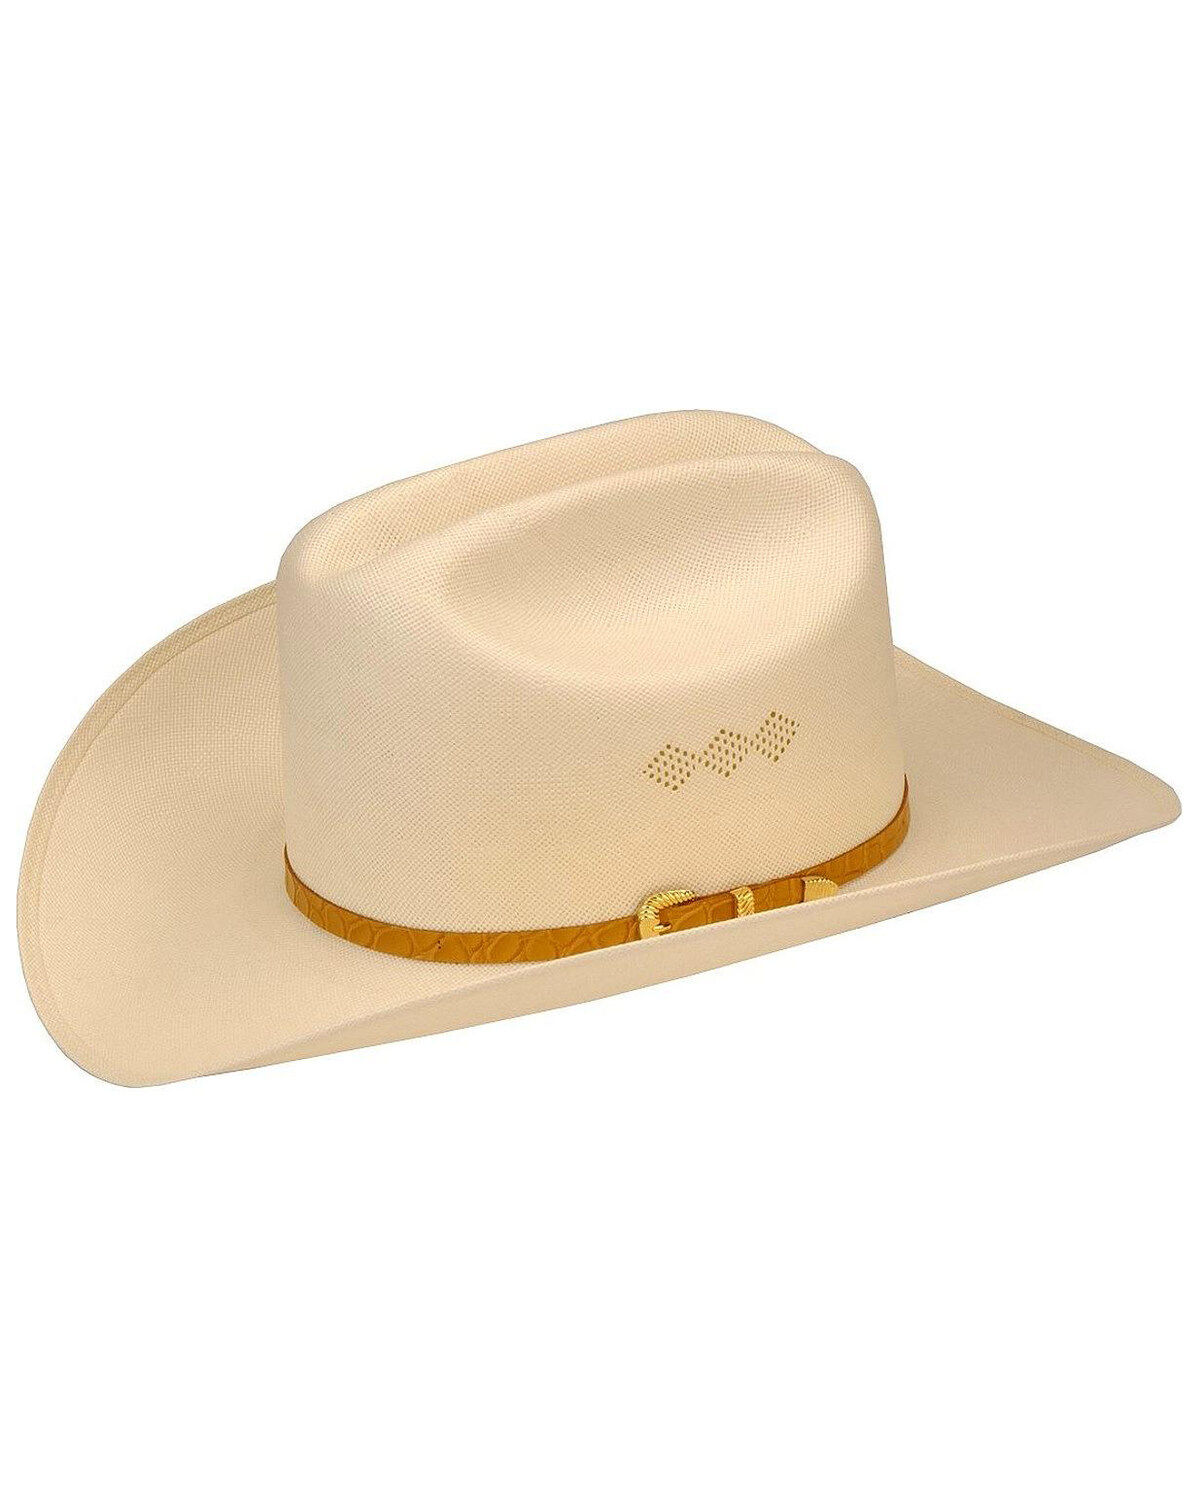 Men s Straw Western Hats a18cc70e57a